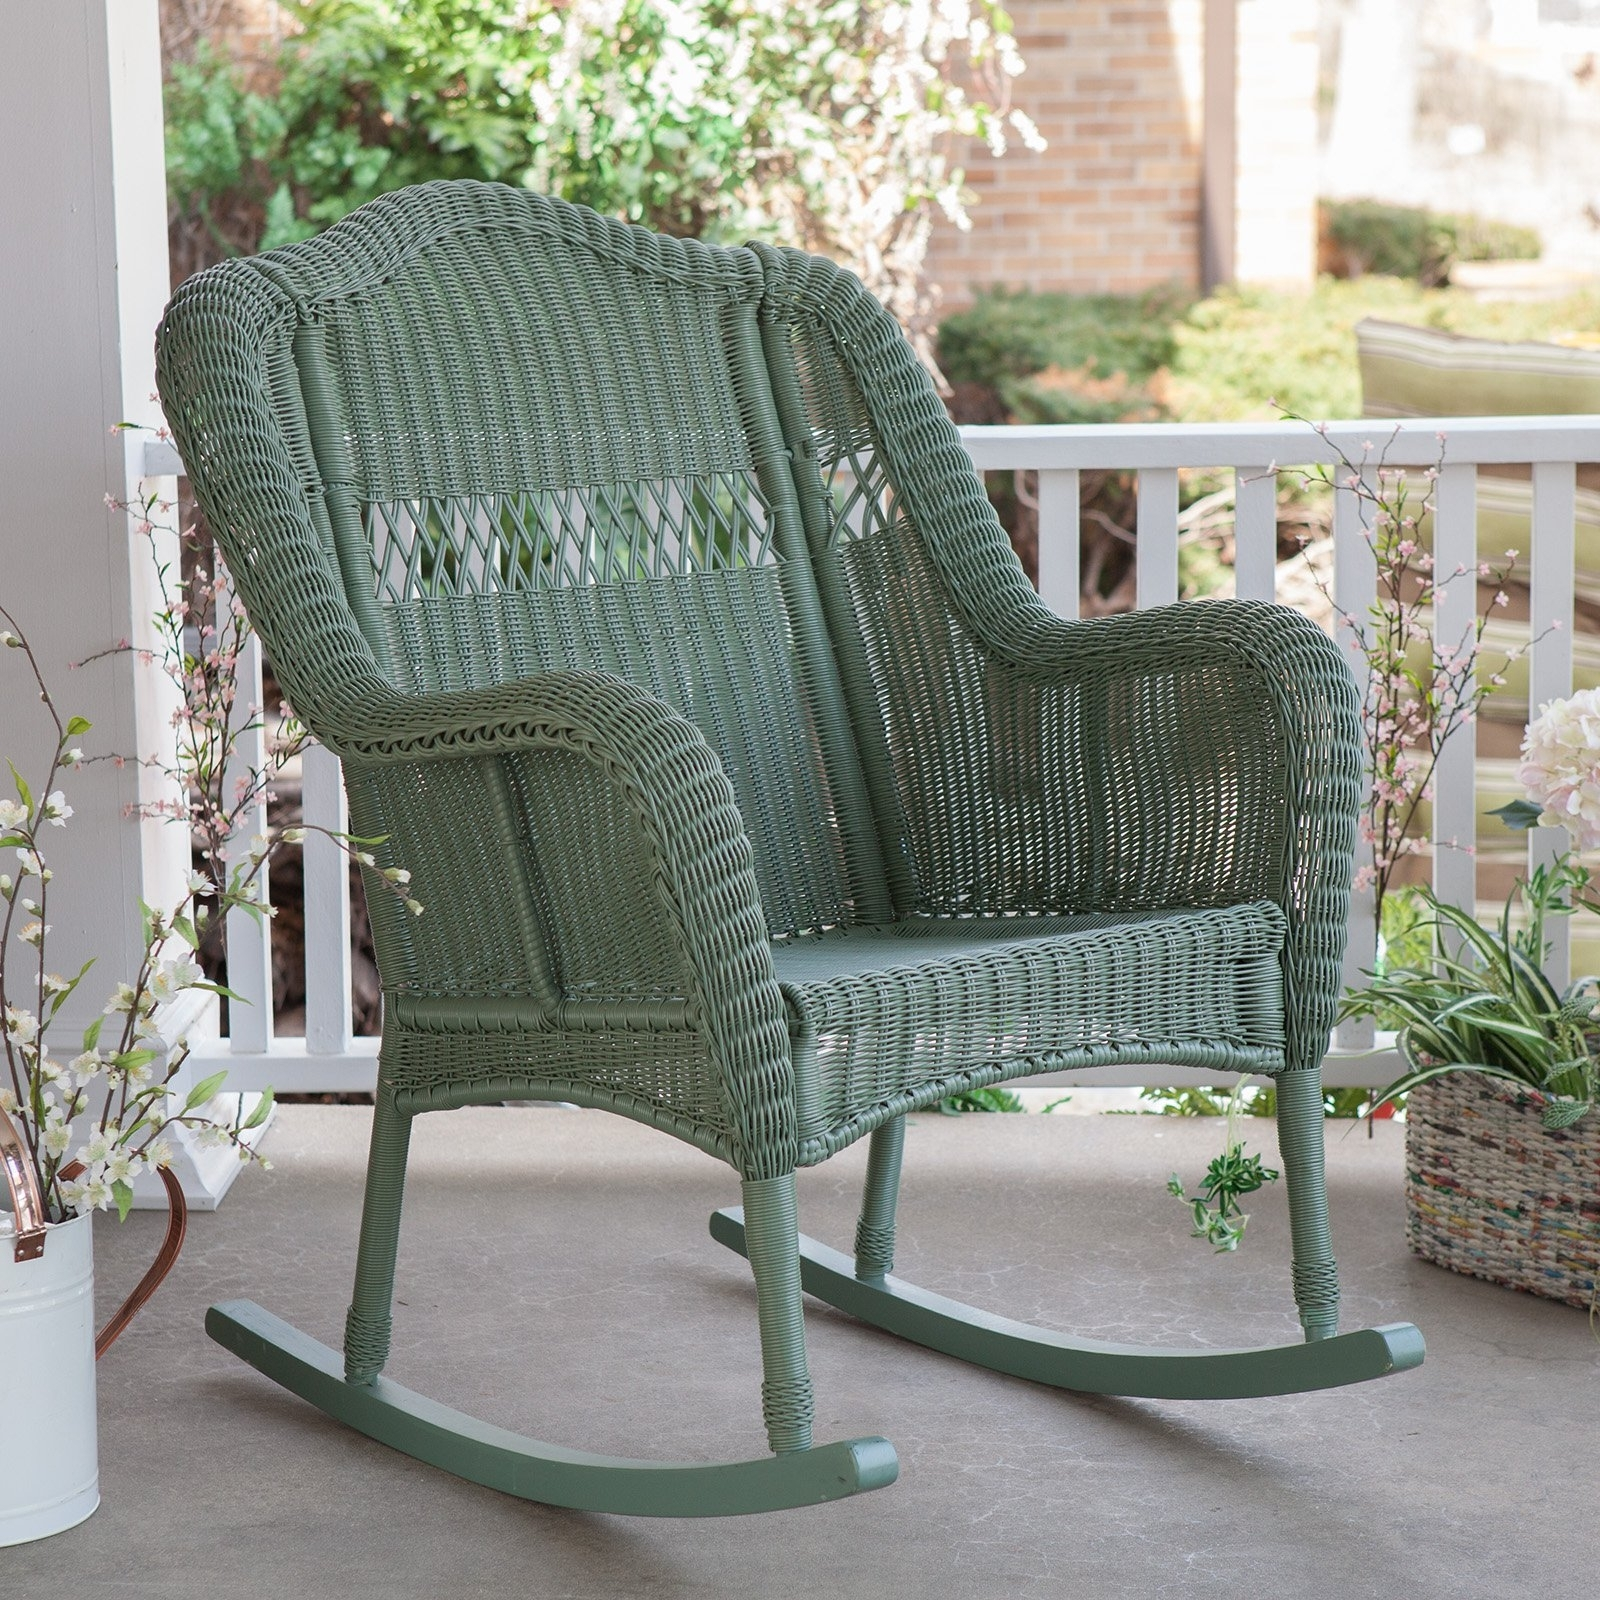 Wicker Rocking Chair With Magazine Holder Intended For Best And Newest White Rocking Chair Outdoor Walmart Outdoor Chair Eames Rar White (View 14 of 15)